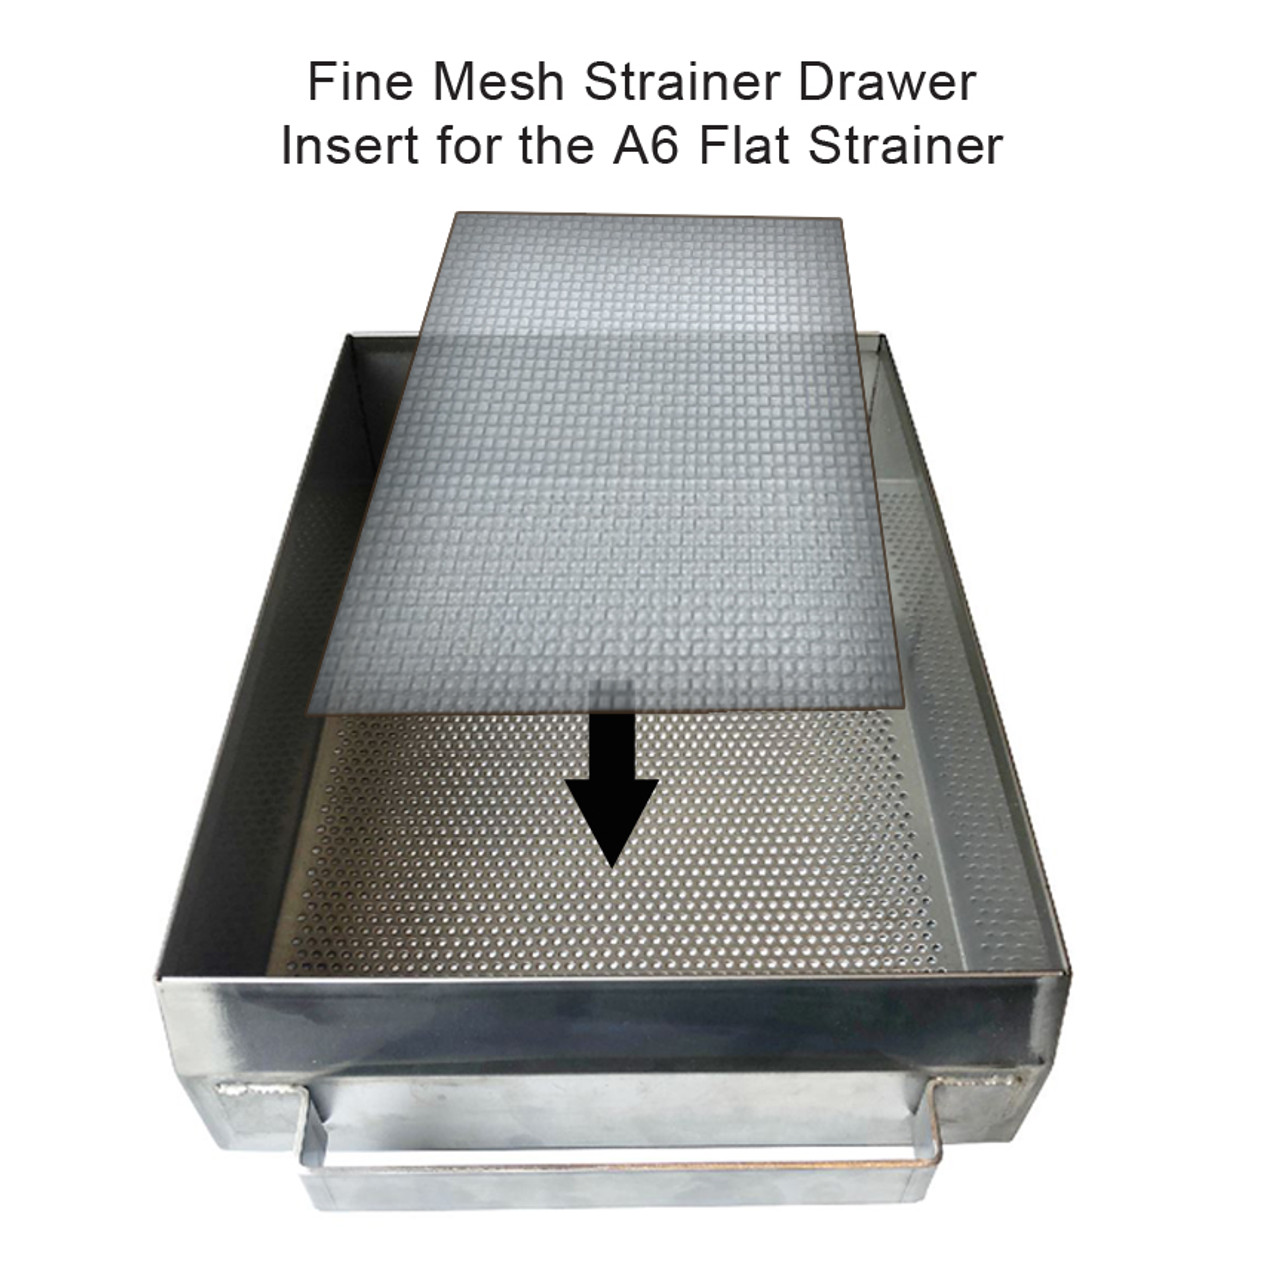 Fine Mesh Screen Insert for the A6 Flat Strainer